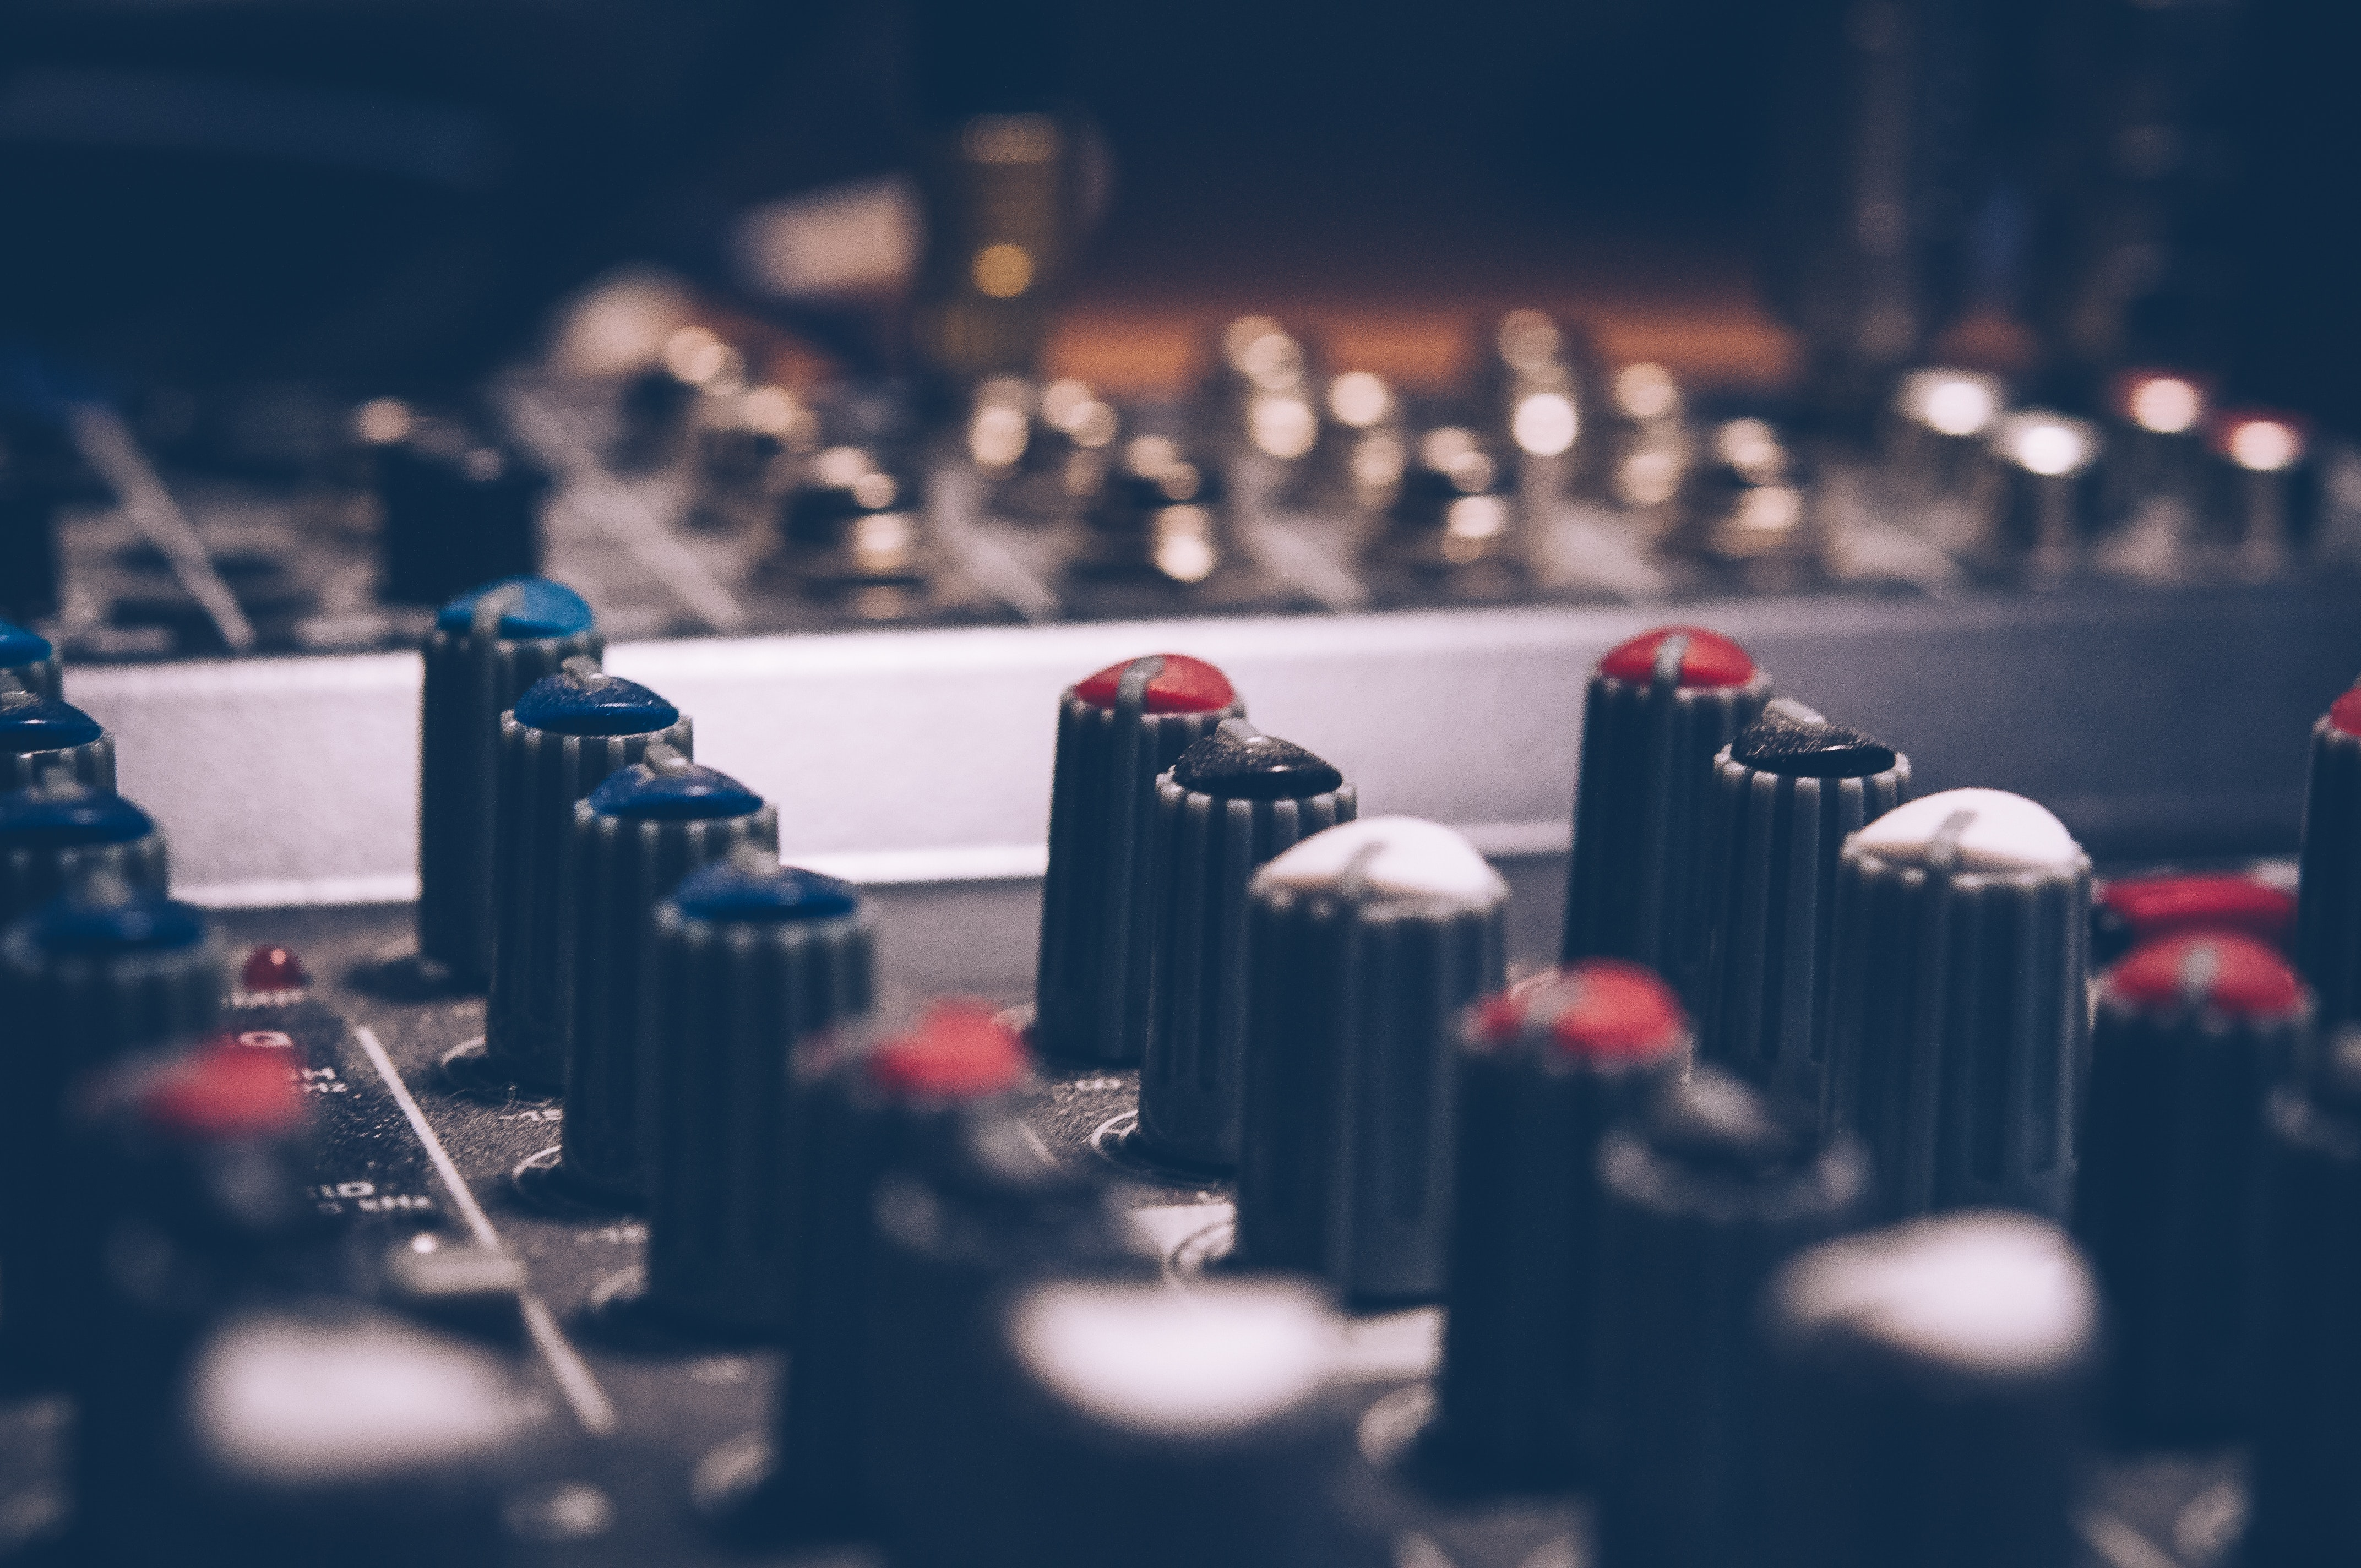 Music-Mixing-Dials-And-Levels